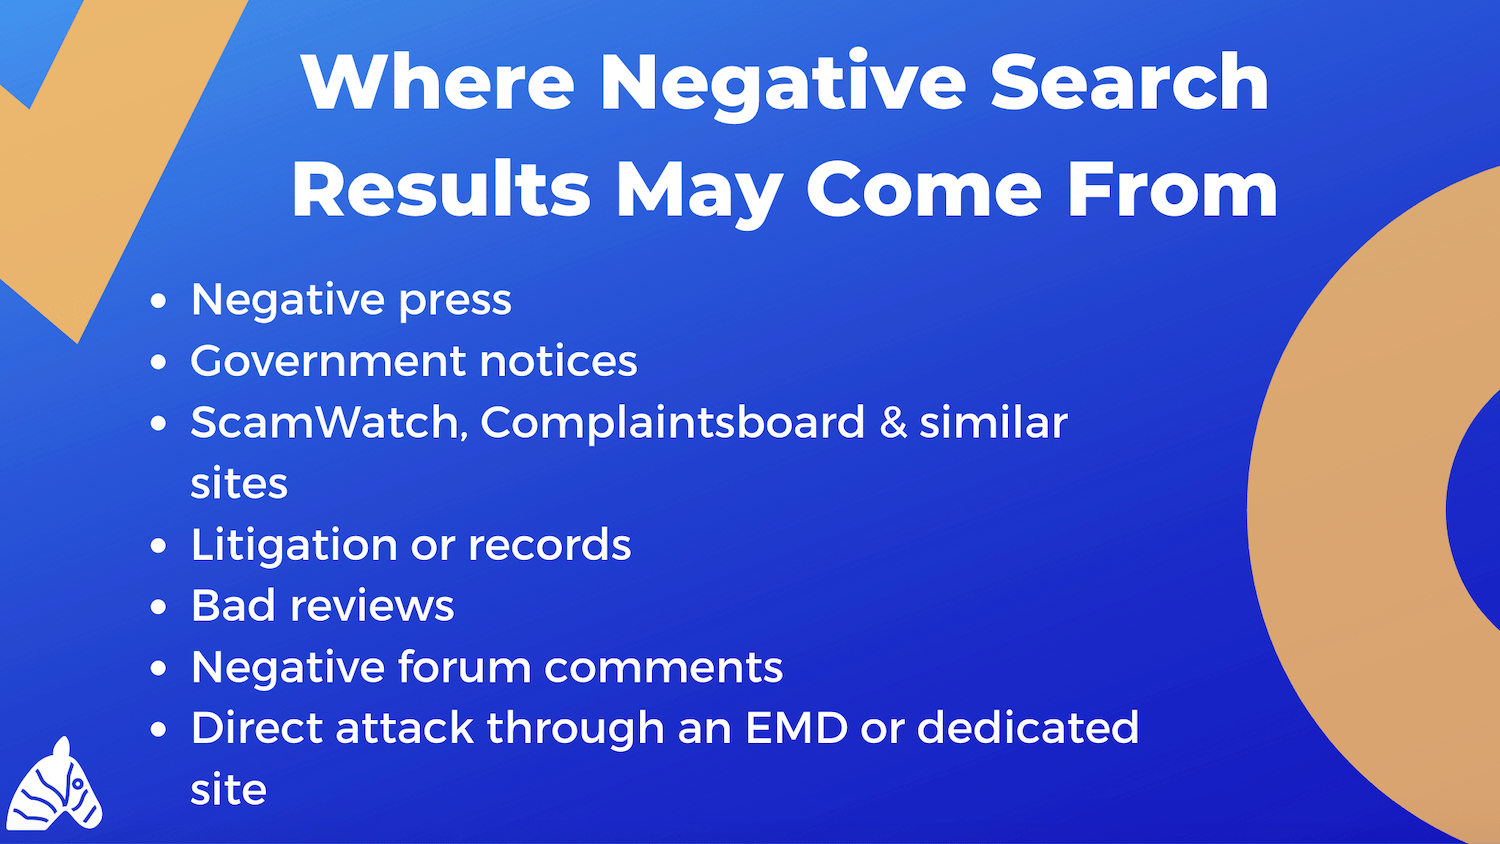 origin of negative search results